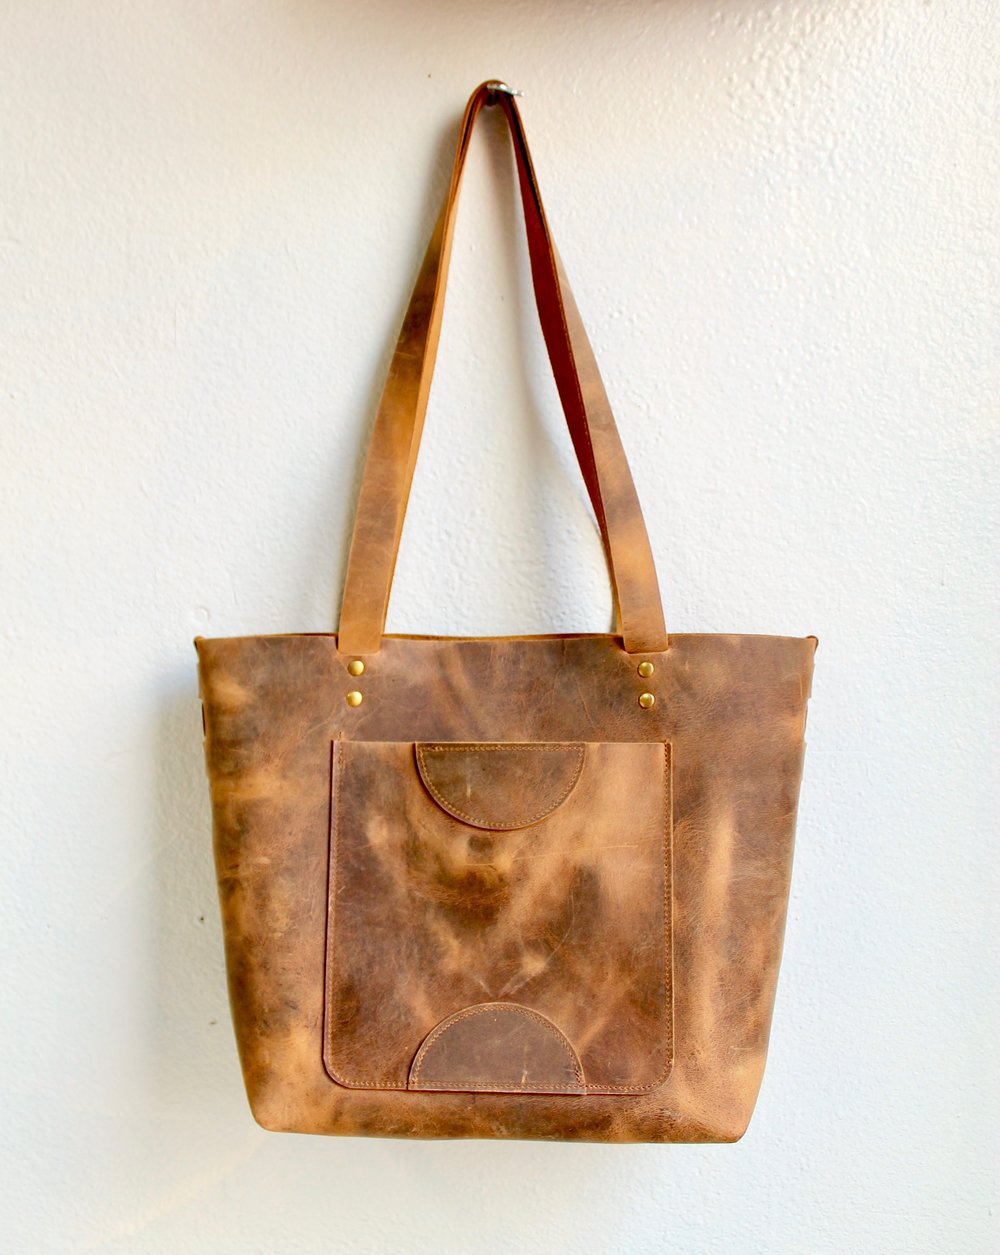 This leather is a waxed chrome tanned leather that has a distinct pull up effect.  When the leather is moved, the oils and waxes shift and lighten the area that they leave.